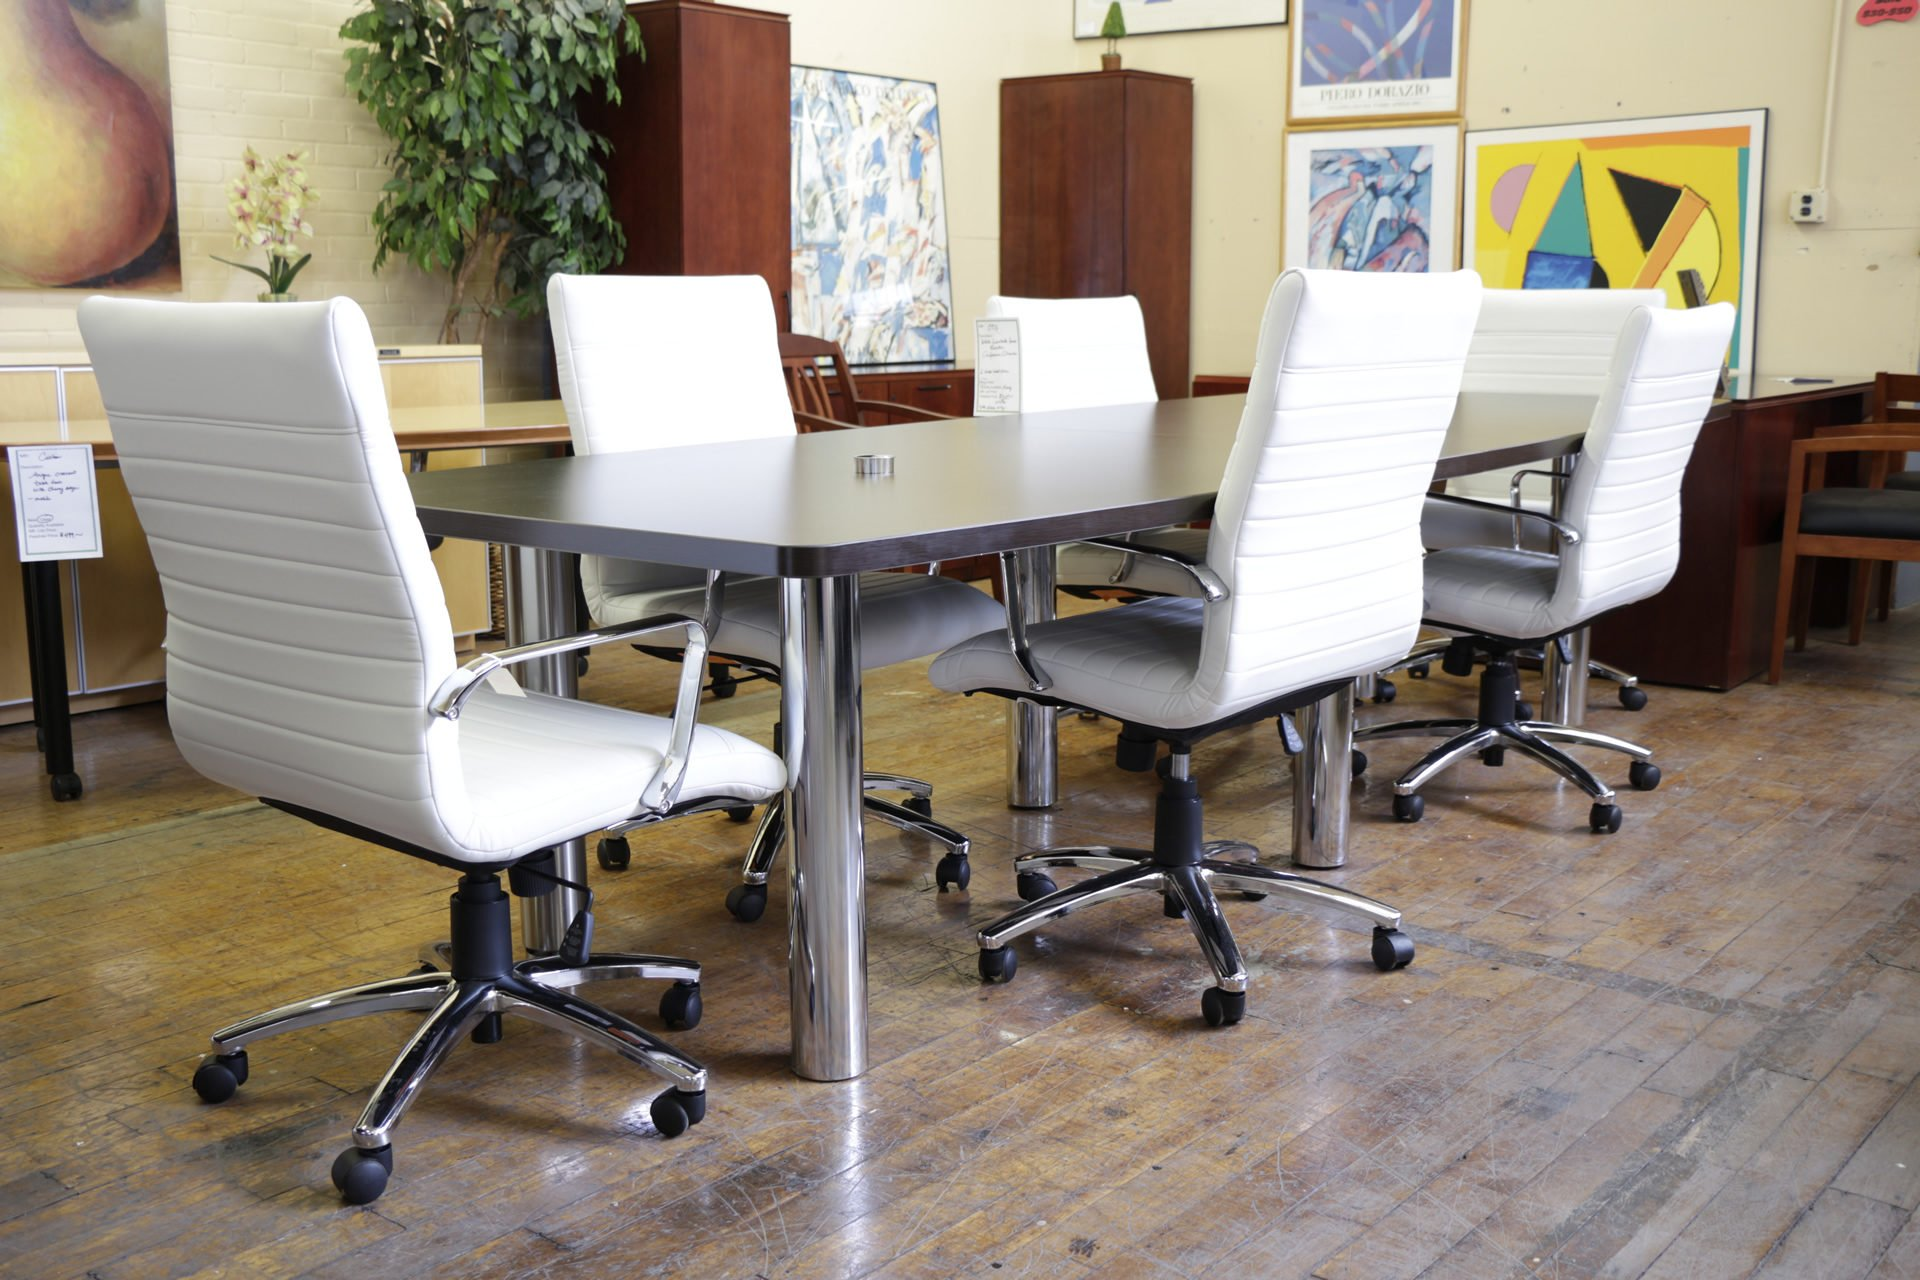 10′ Laminate Boat Shaped Espresso Conference Table with Chrome Legs